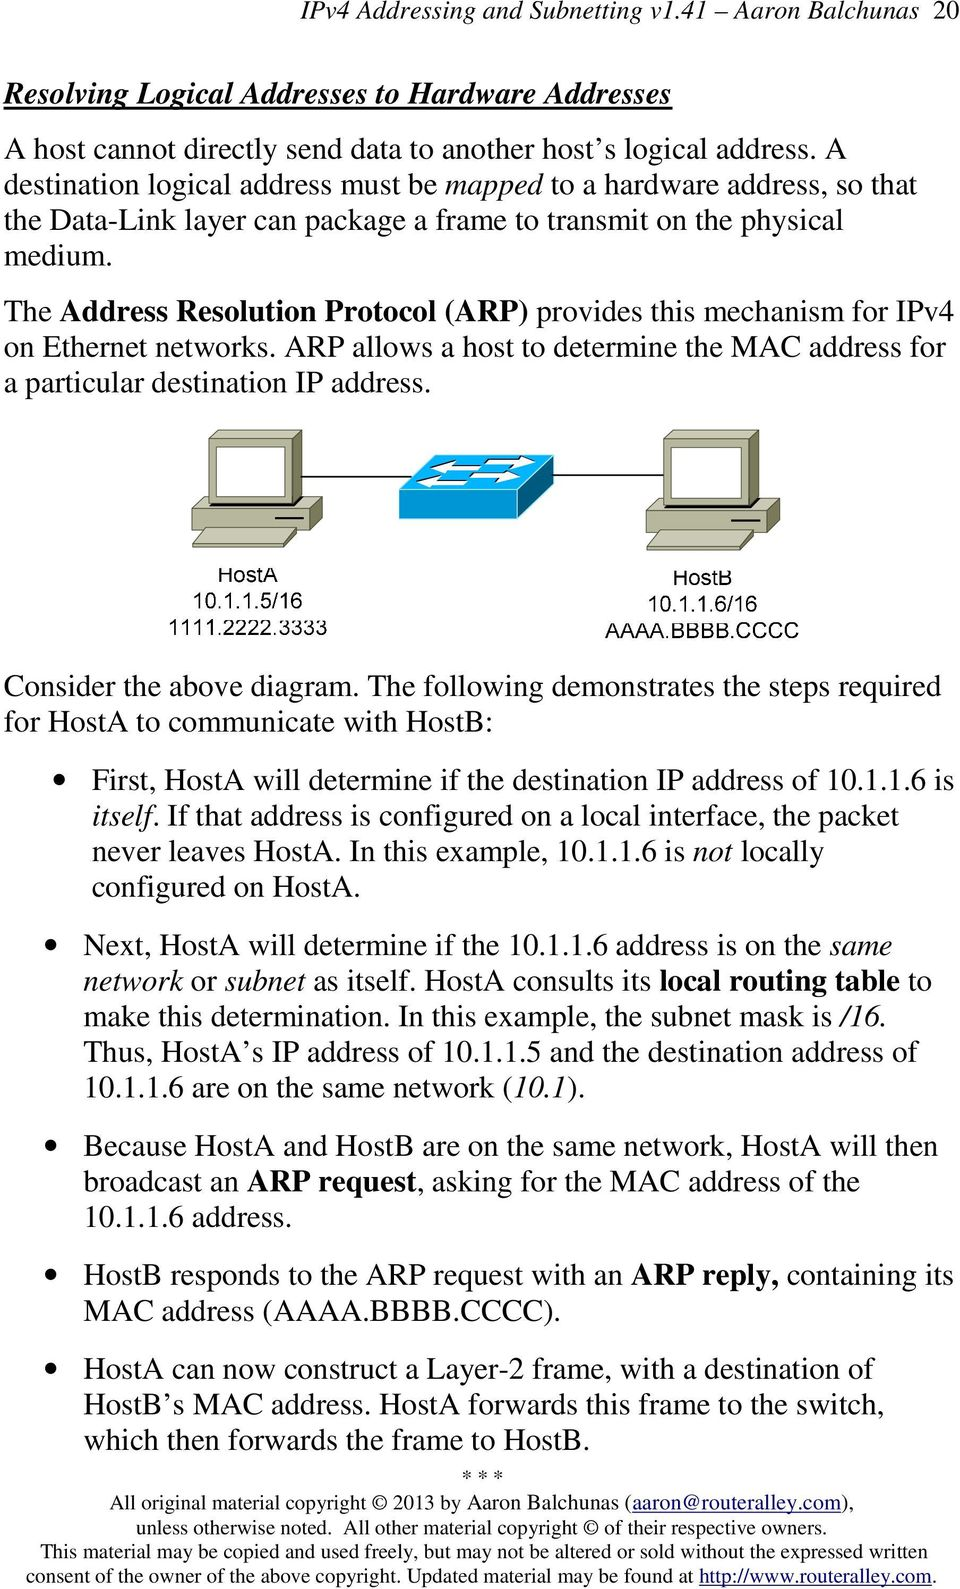 IPv4 Addressing and Subnetting - - PDF